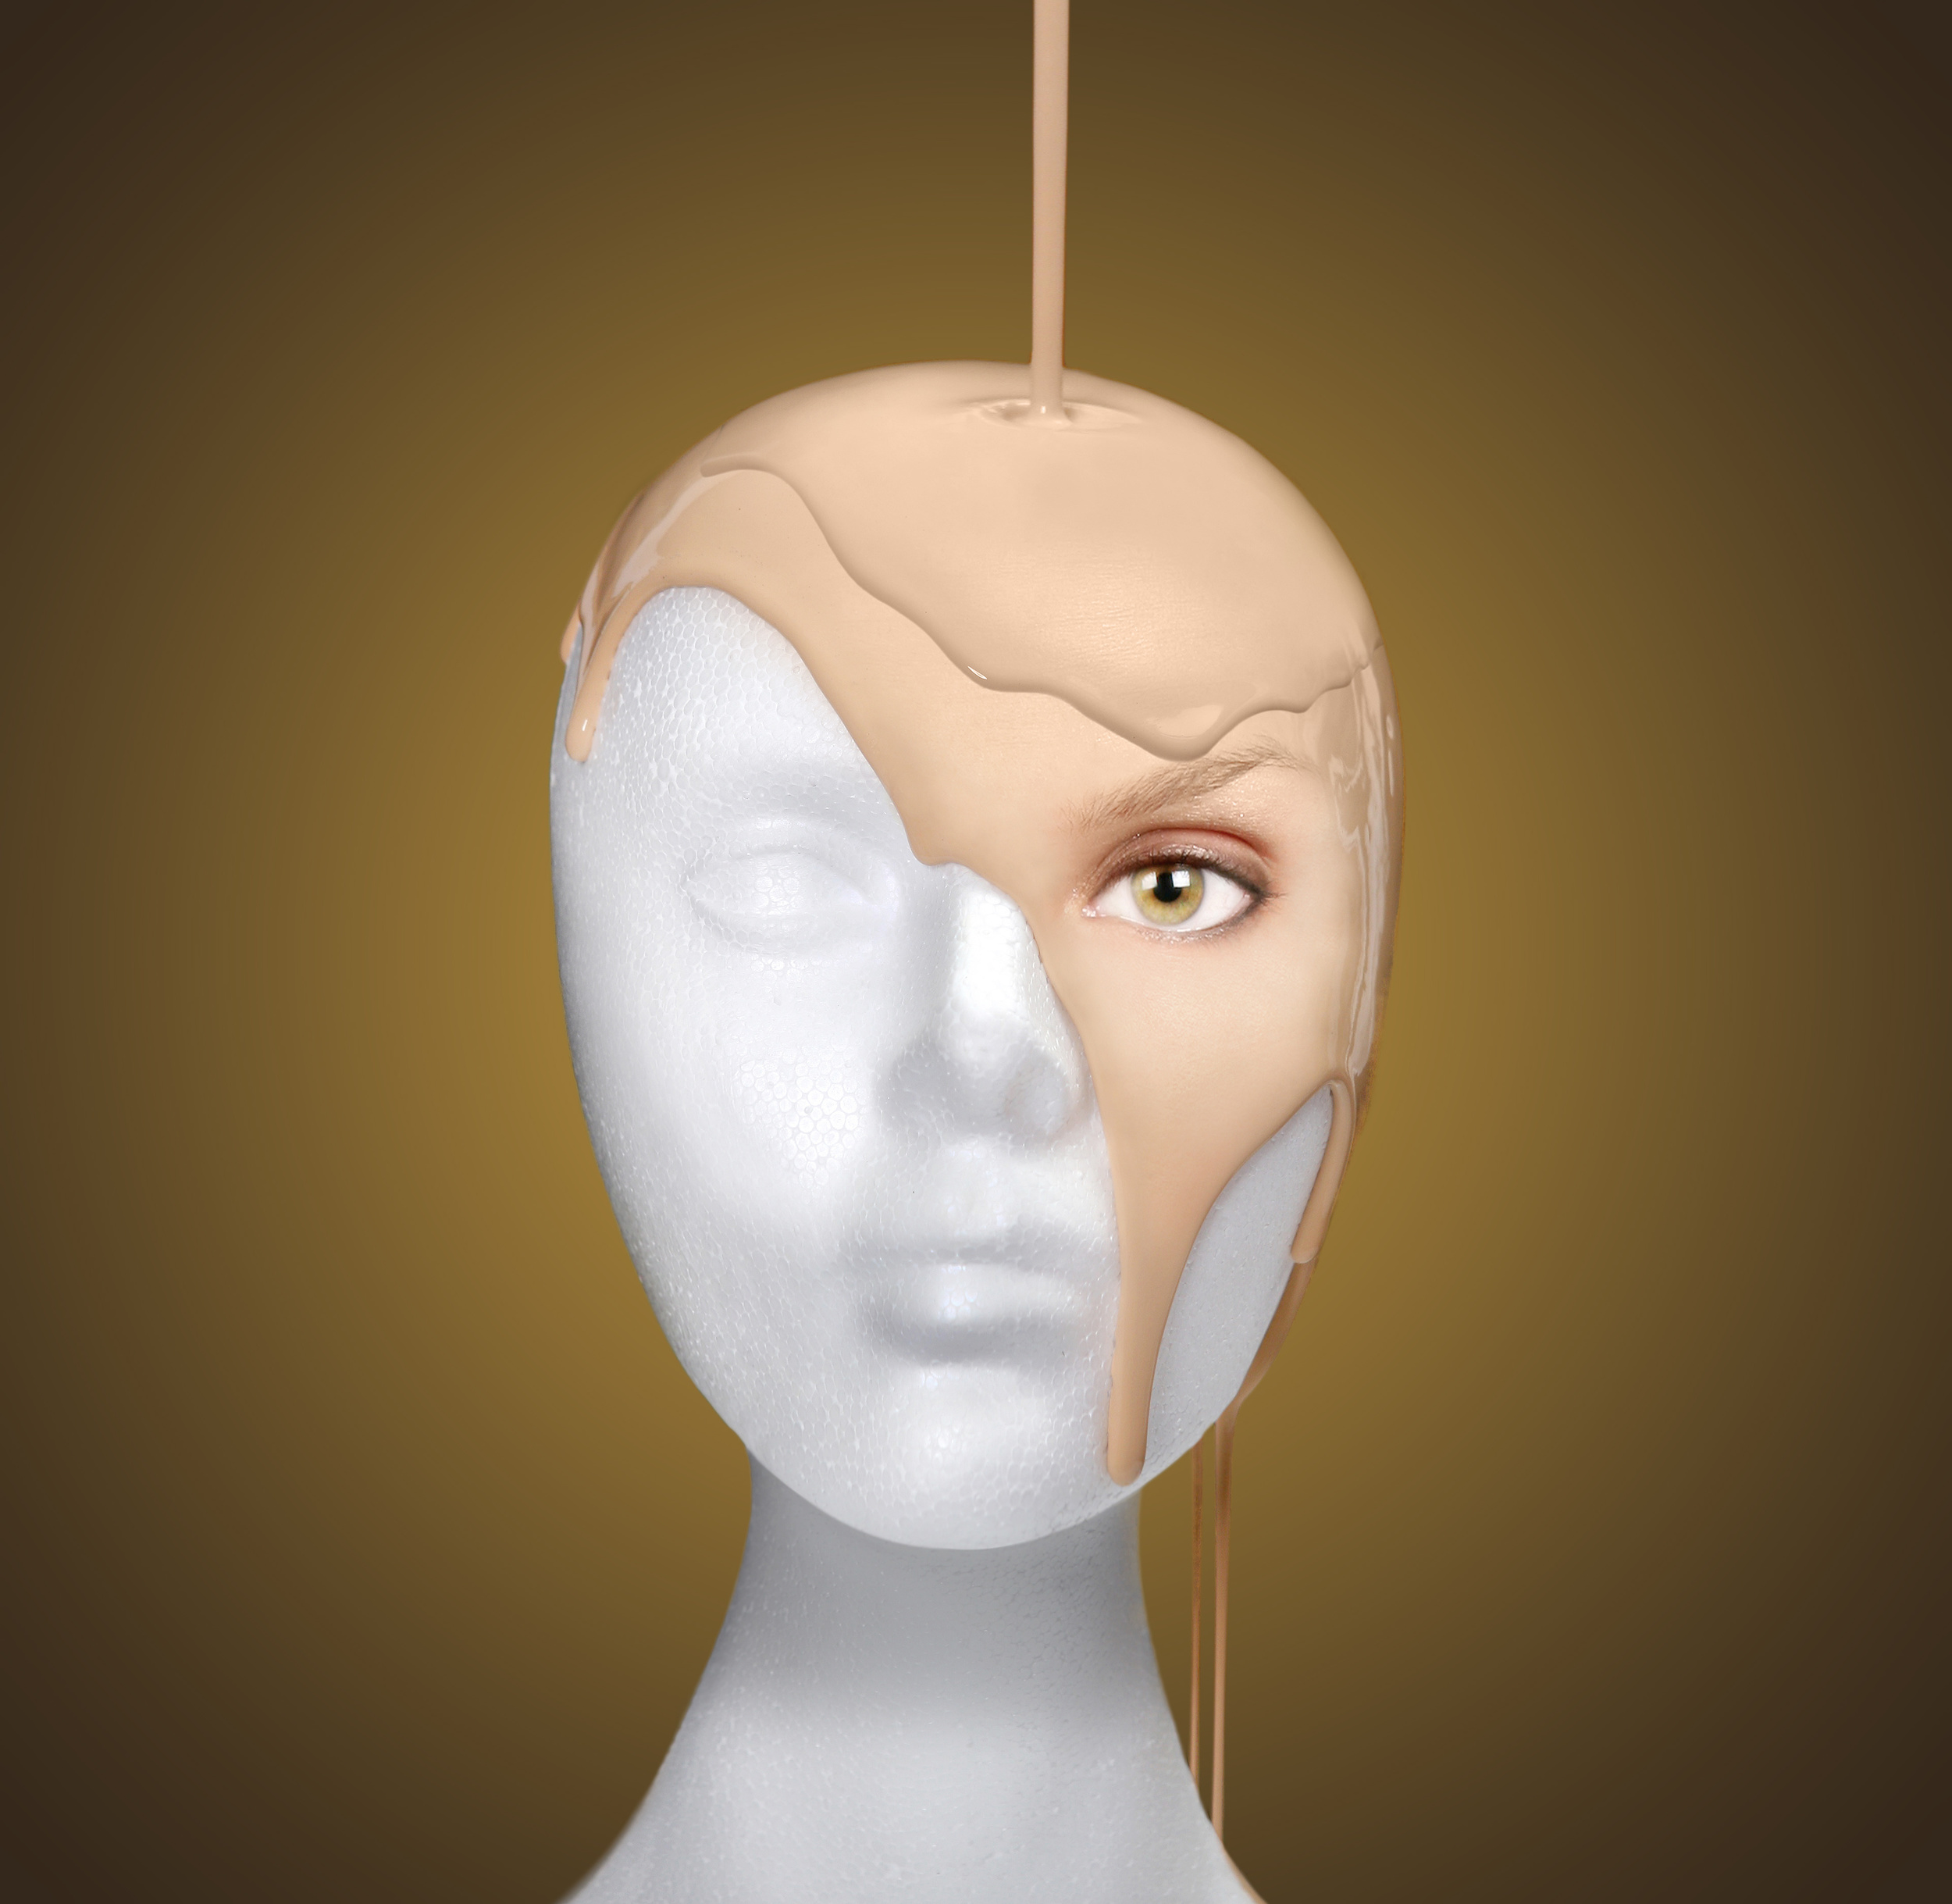 Concept of Pouring a Face Onto a Mannequin Head